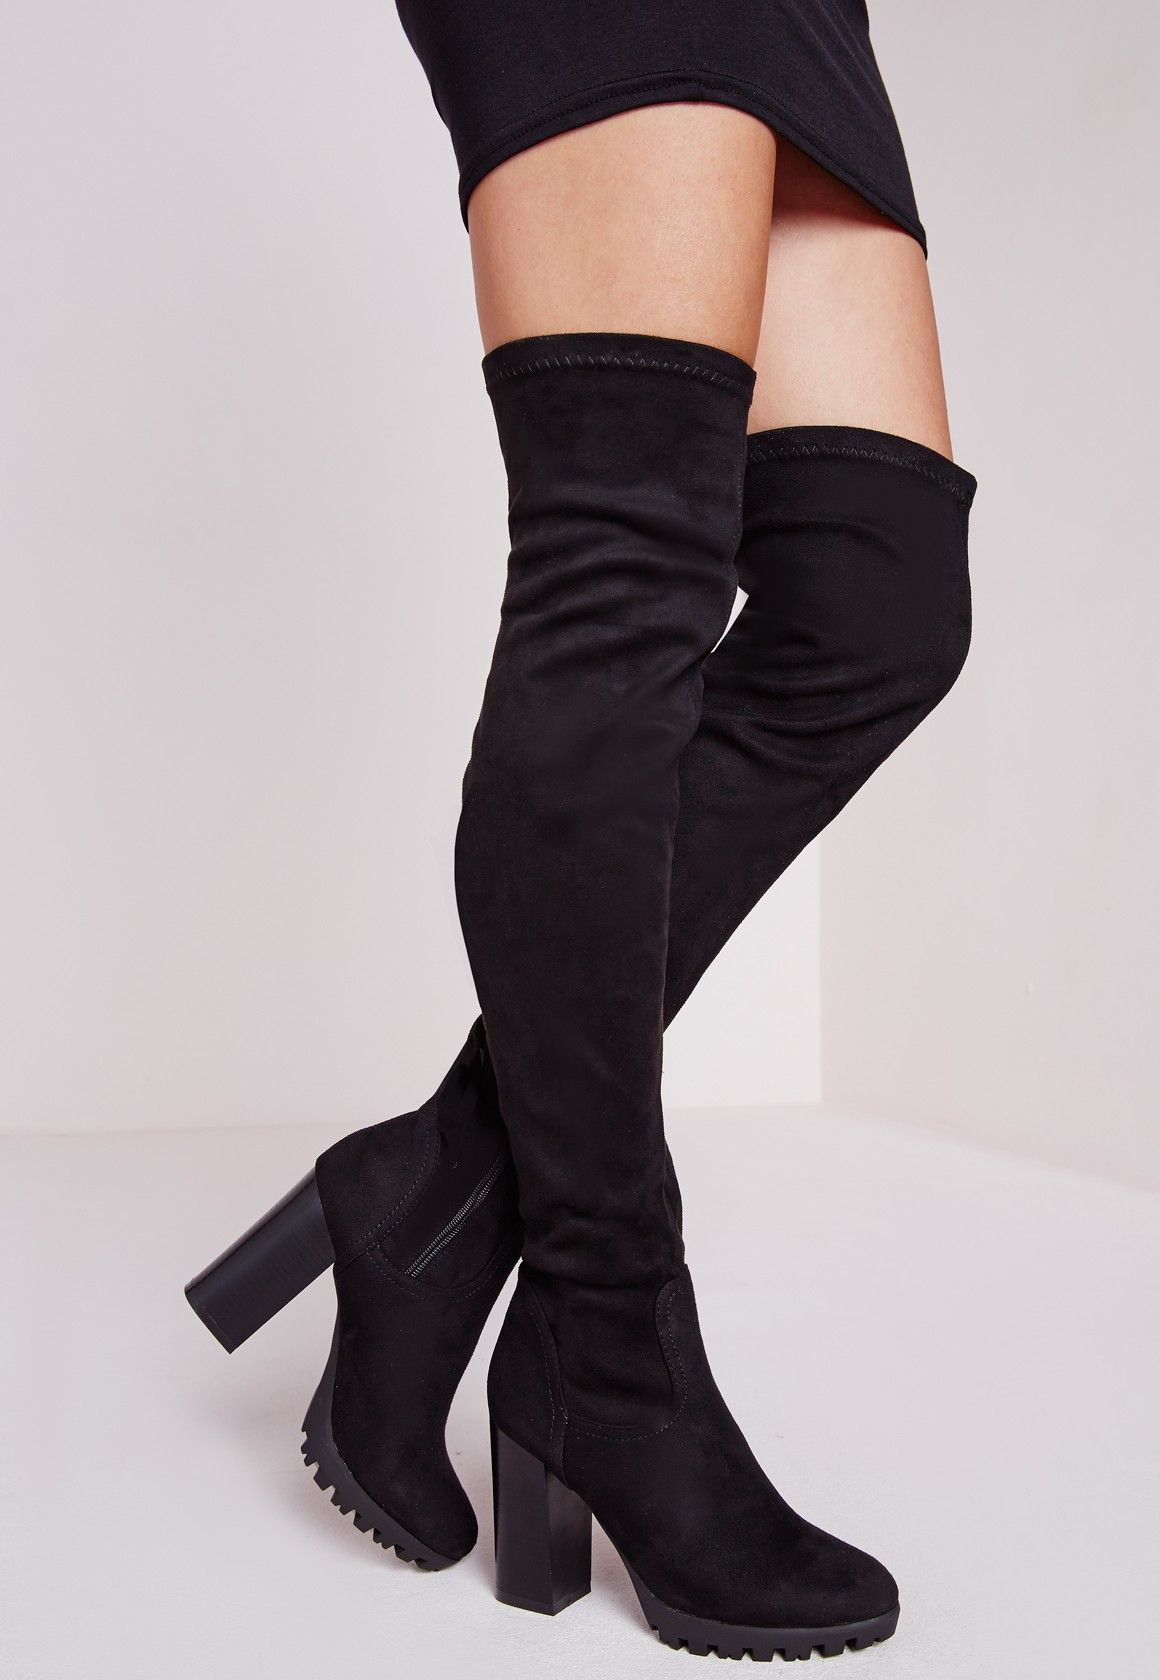 11068fb2767 Over The Knee Cleated Sole Boots Black - Shoes - Boots - Missguided ...